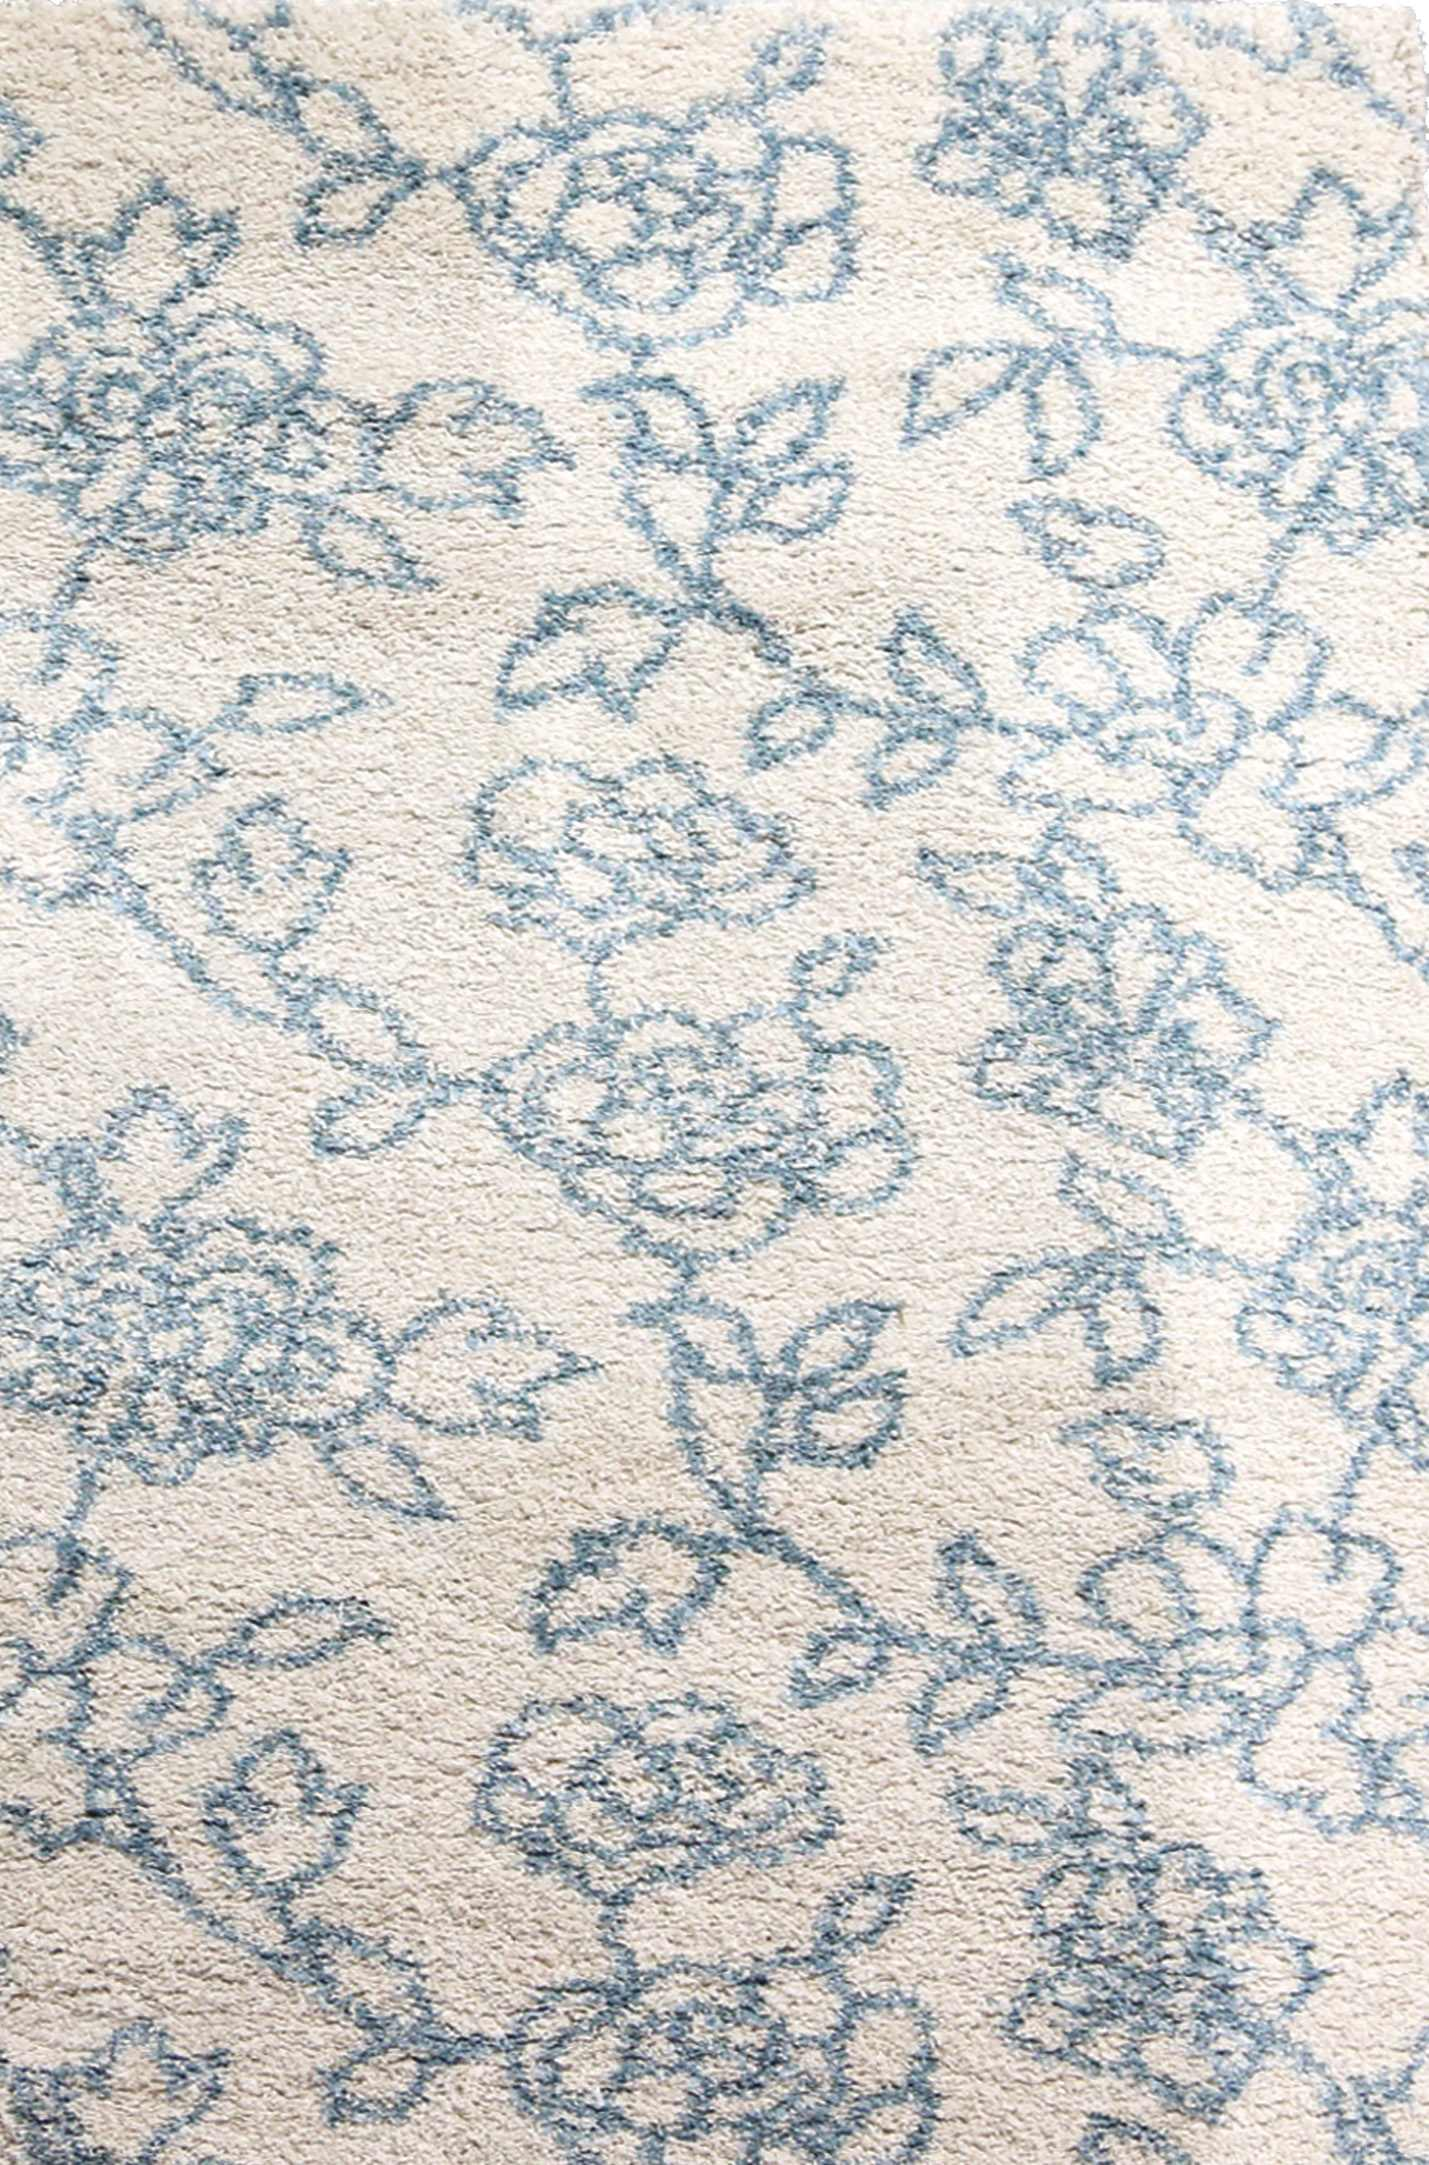 Dynamic Rugs Passion Floral Cream 6206 Area Rug